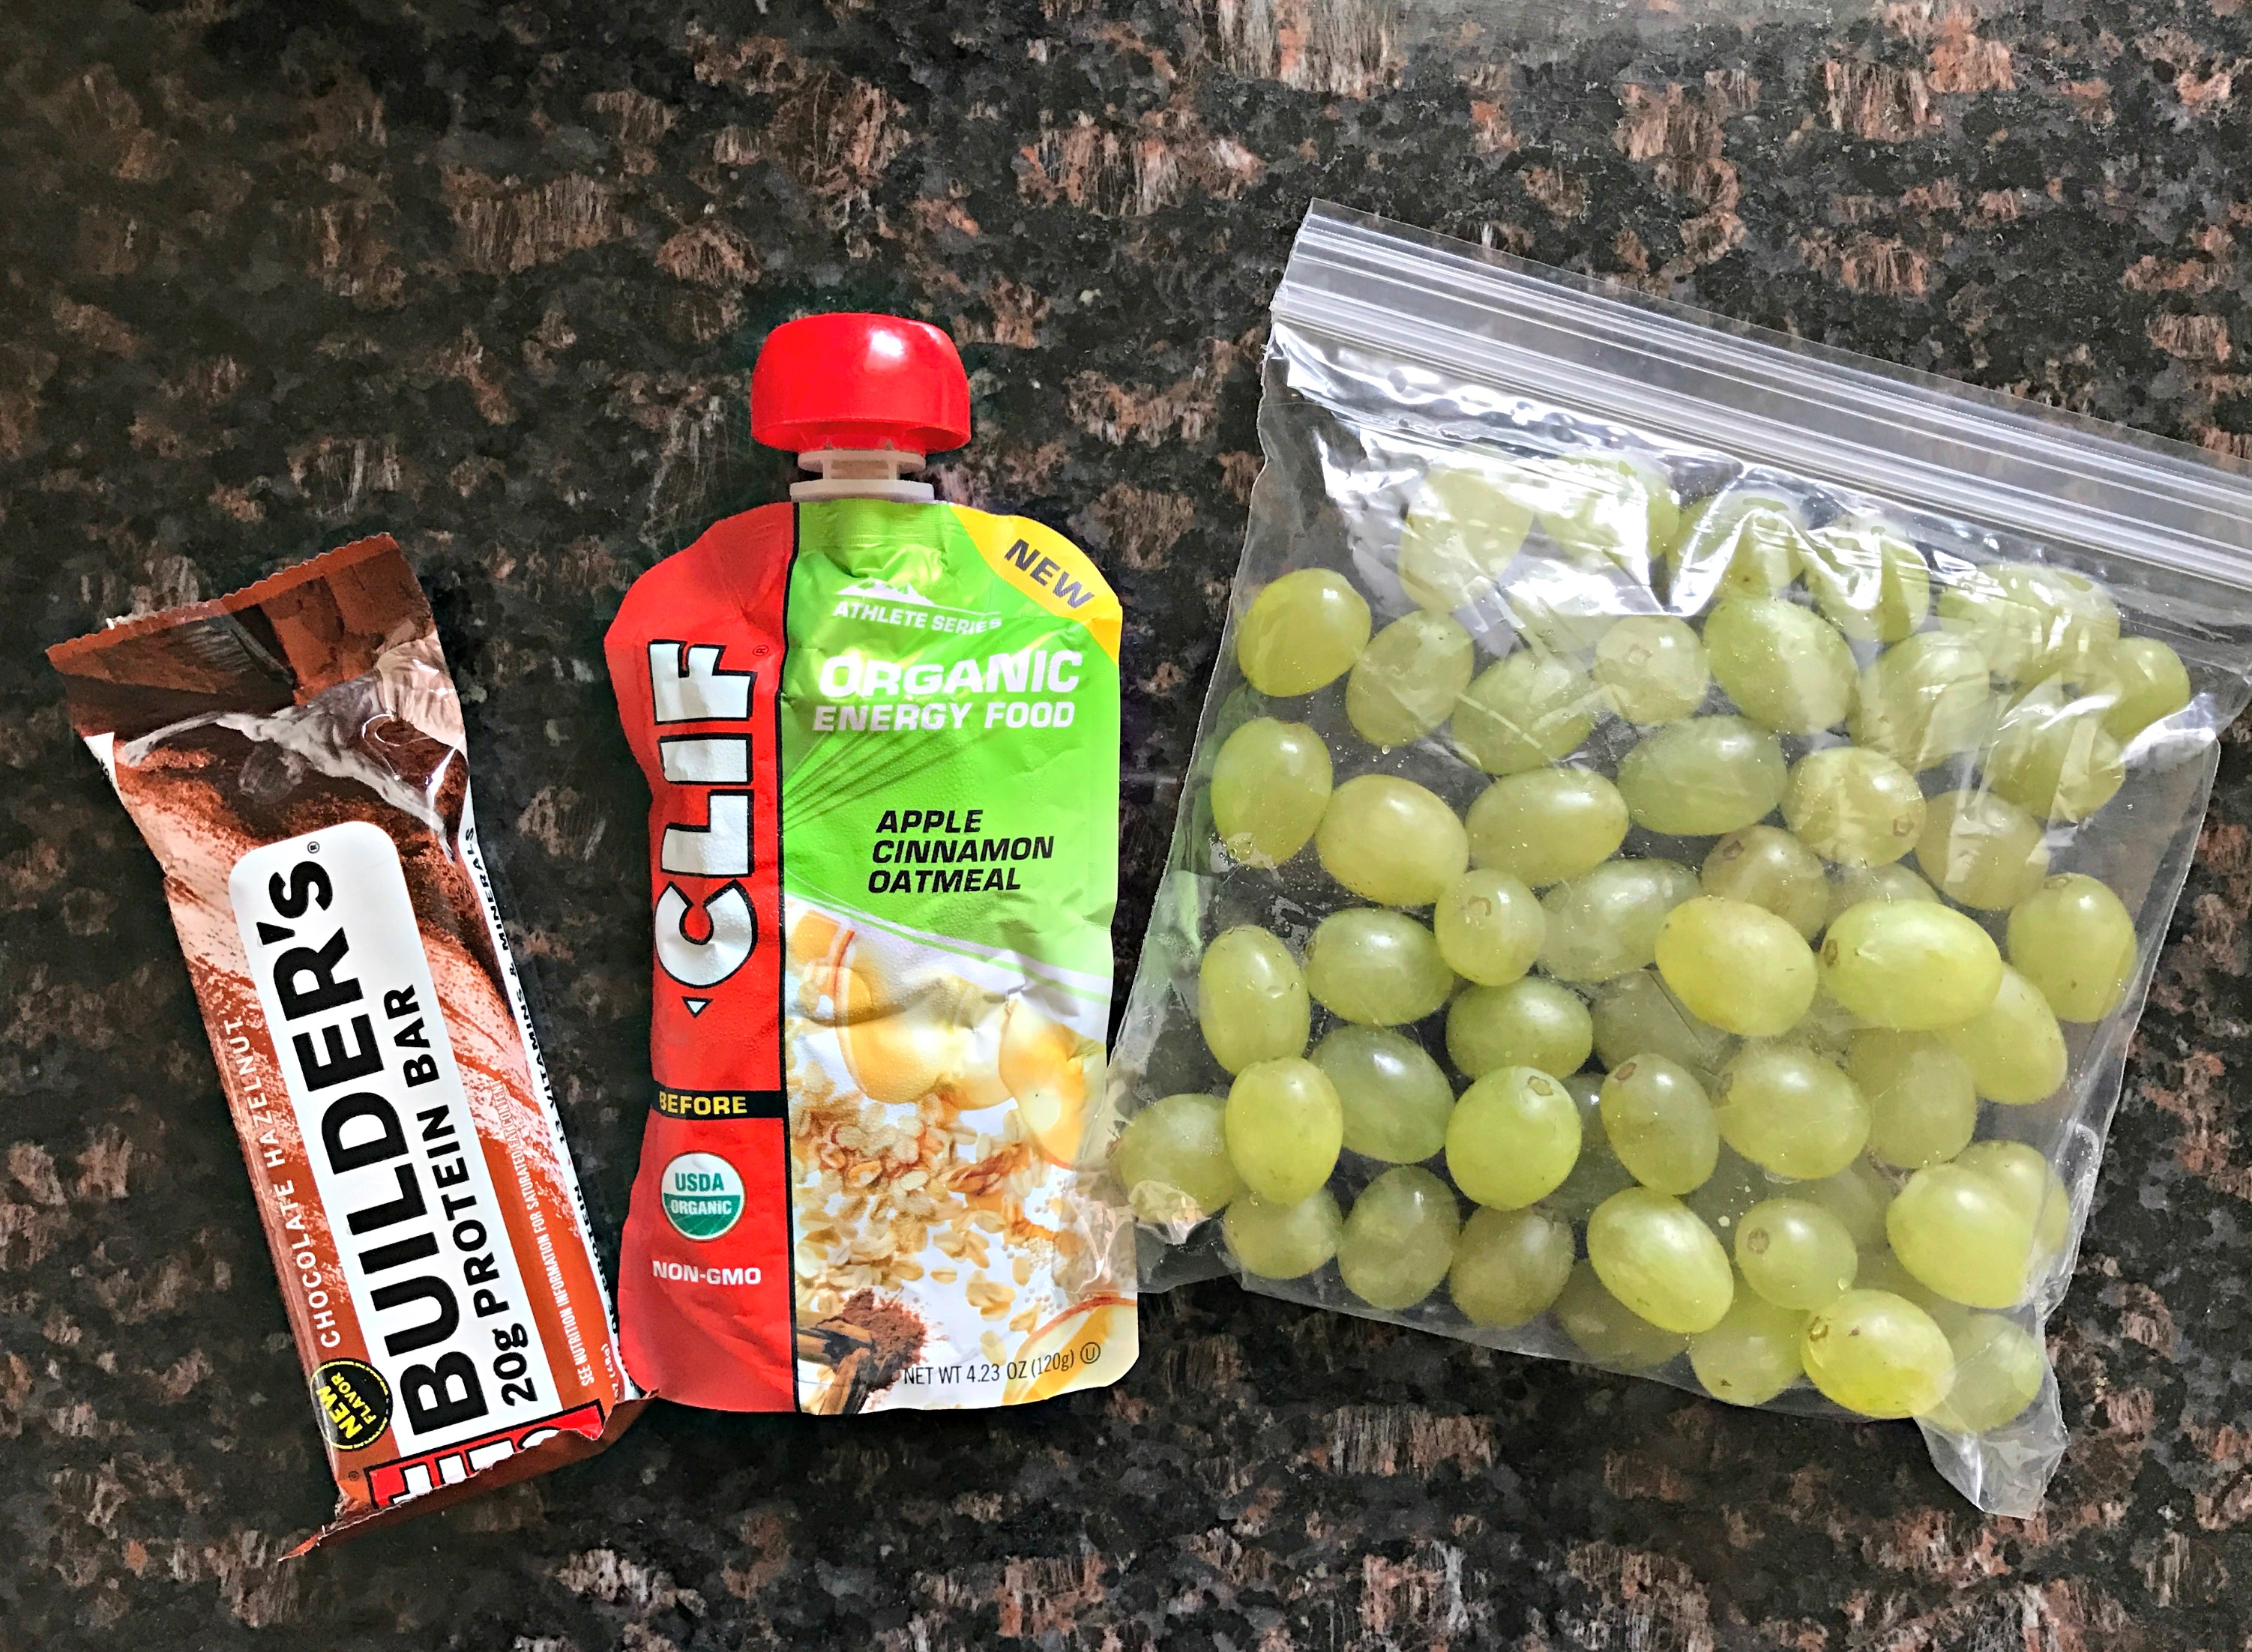 clif-builders-protein-bar-organic-energy-food